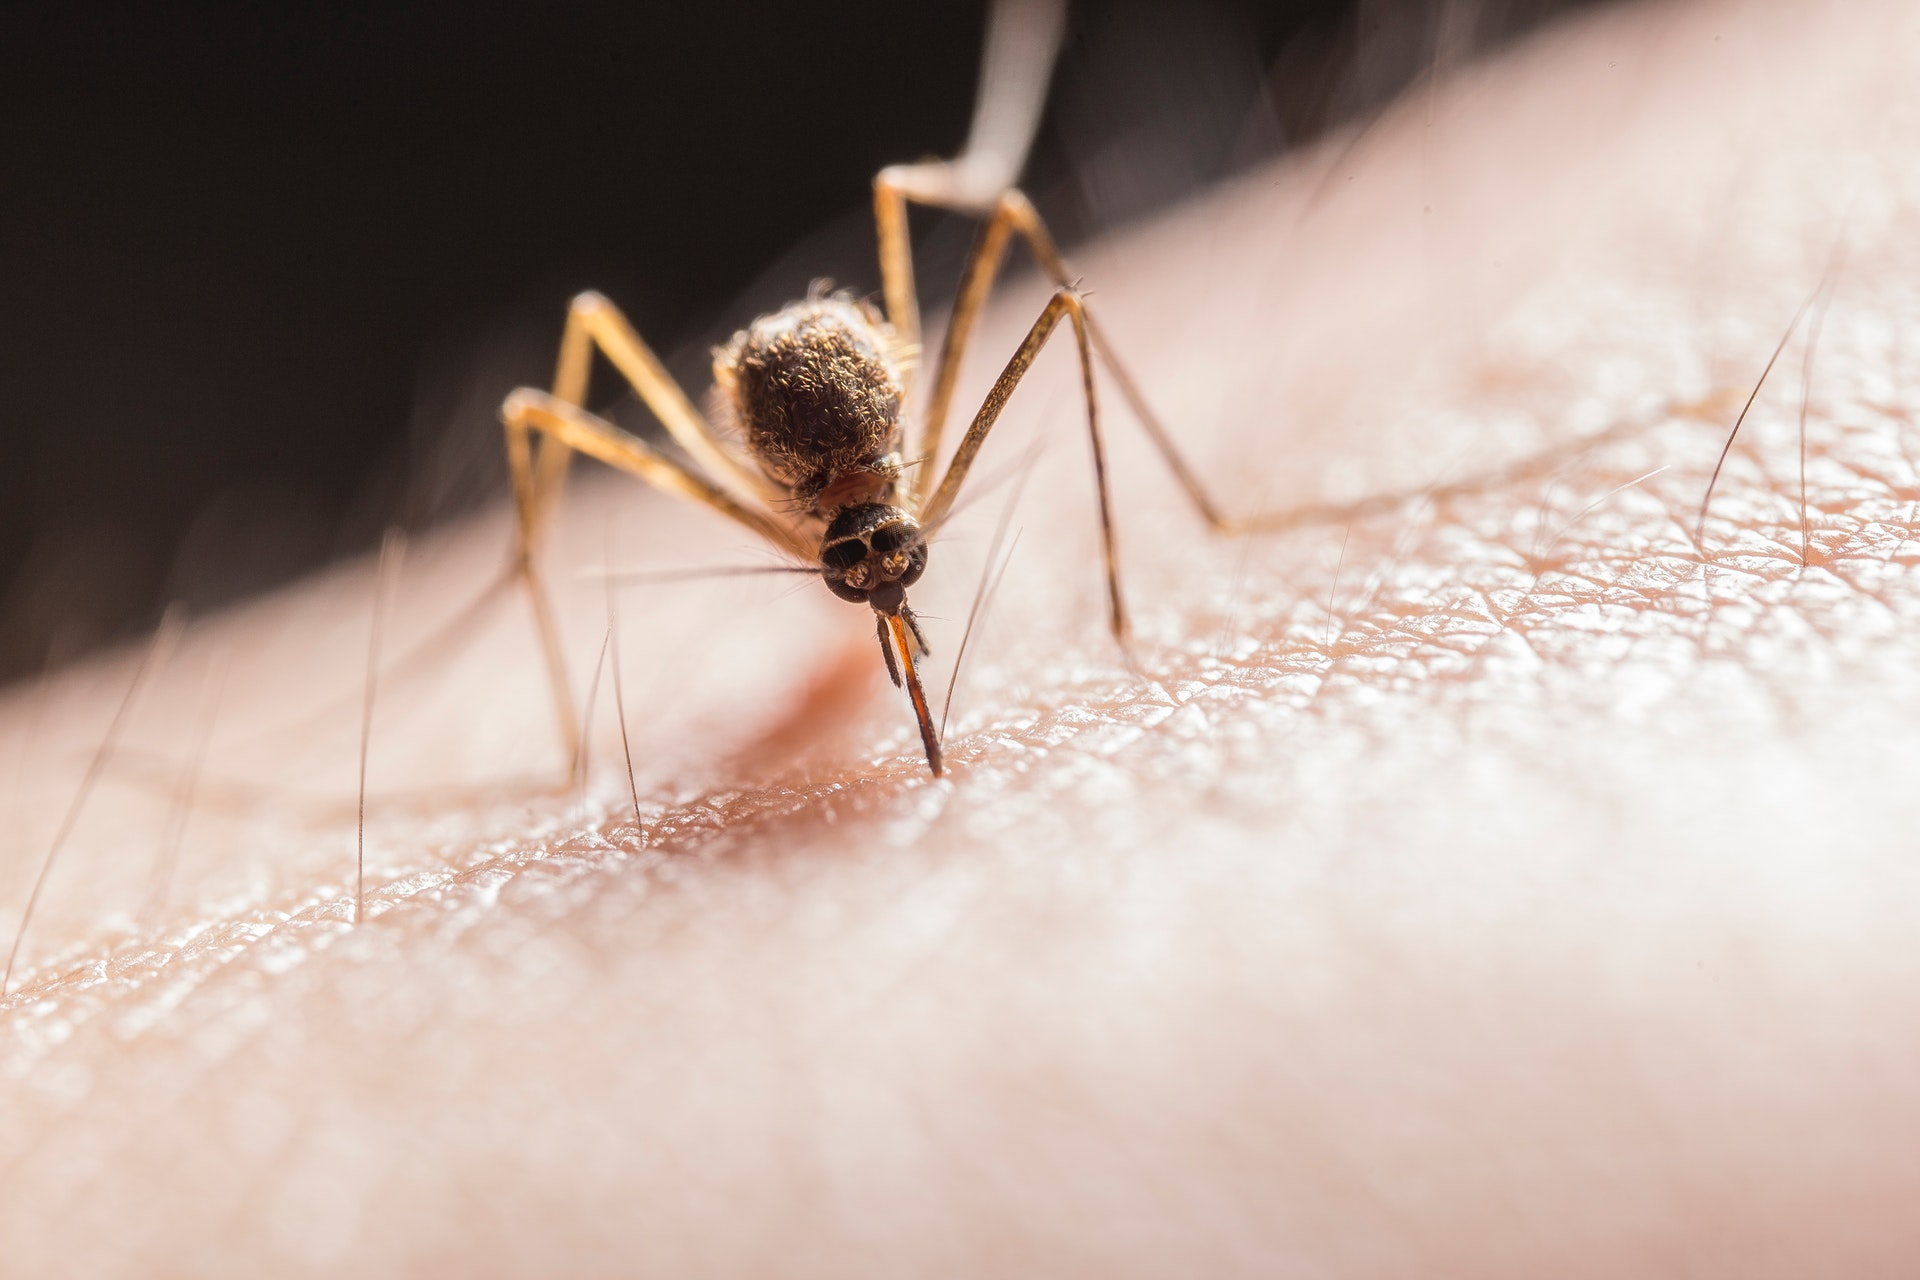 Top Tips For Managing Mosquitoes in Your Garden